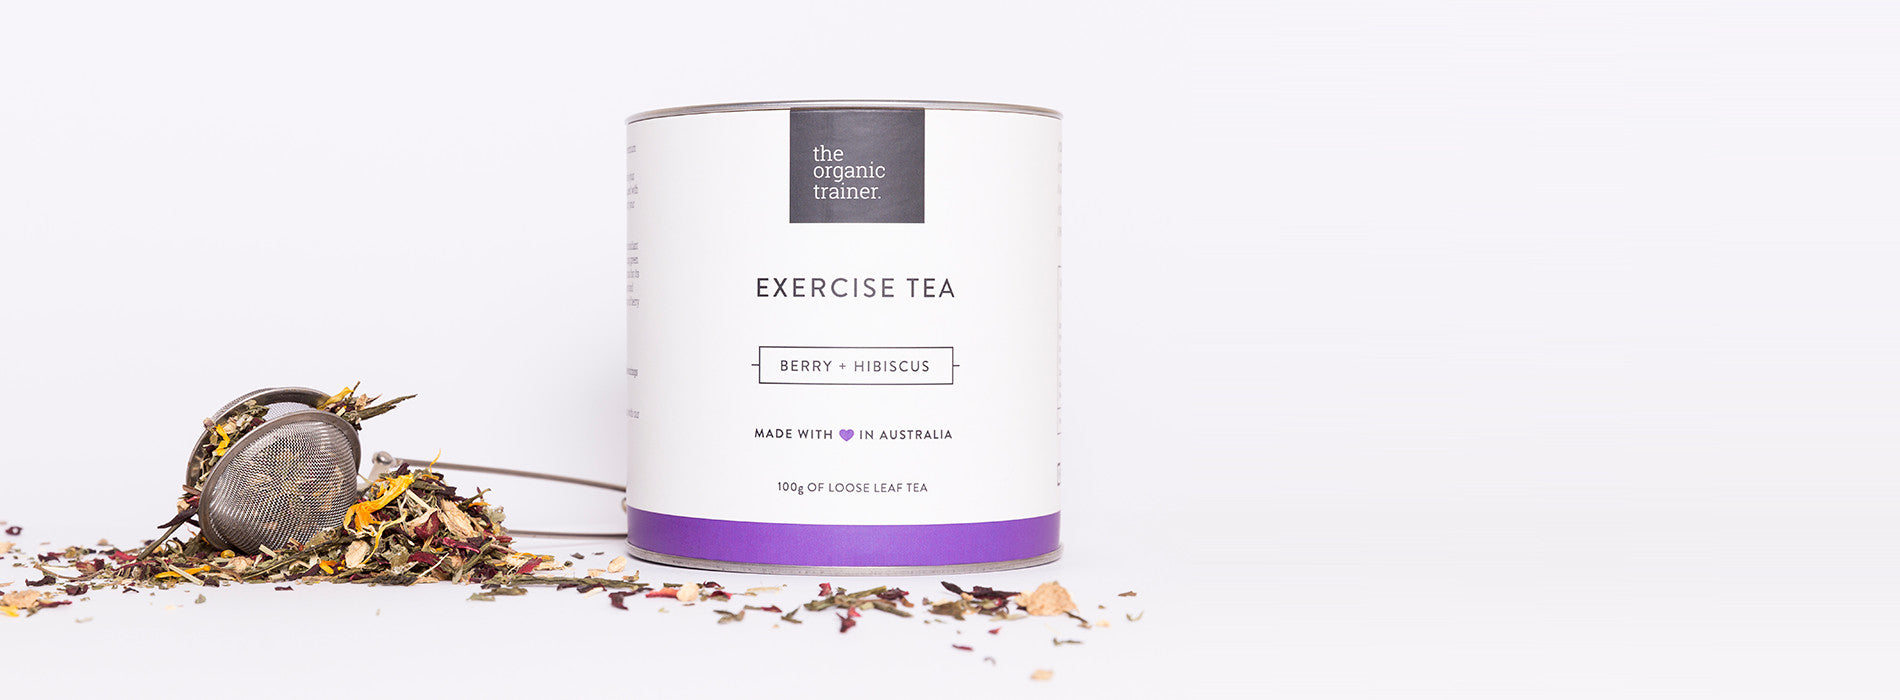 The Organic Trainer - Exercise Tea